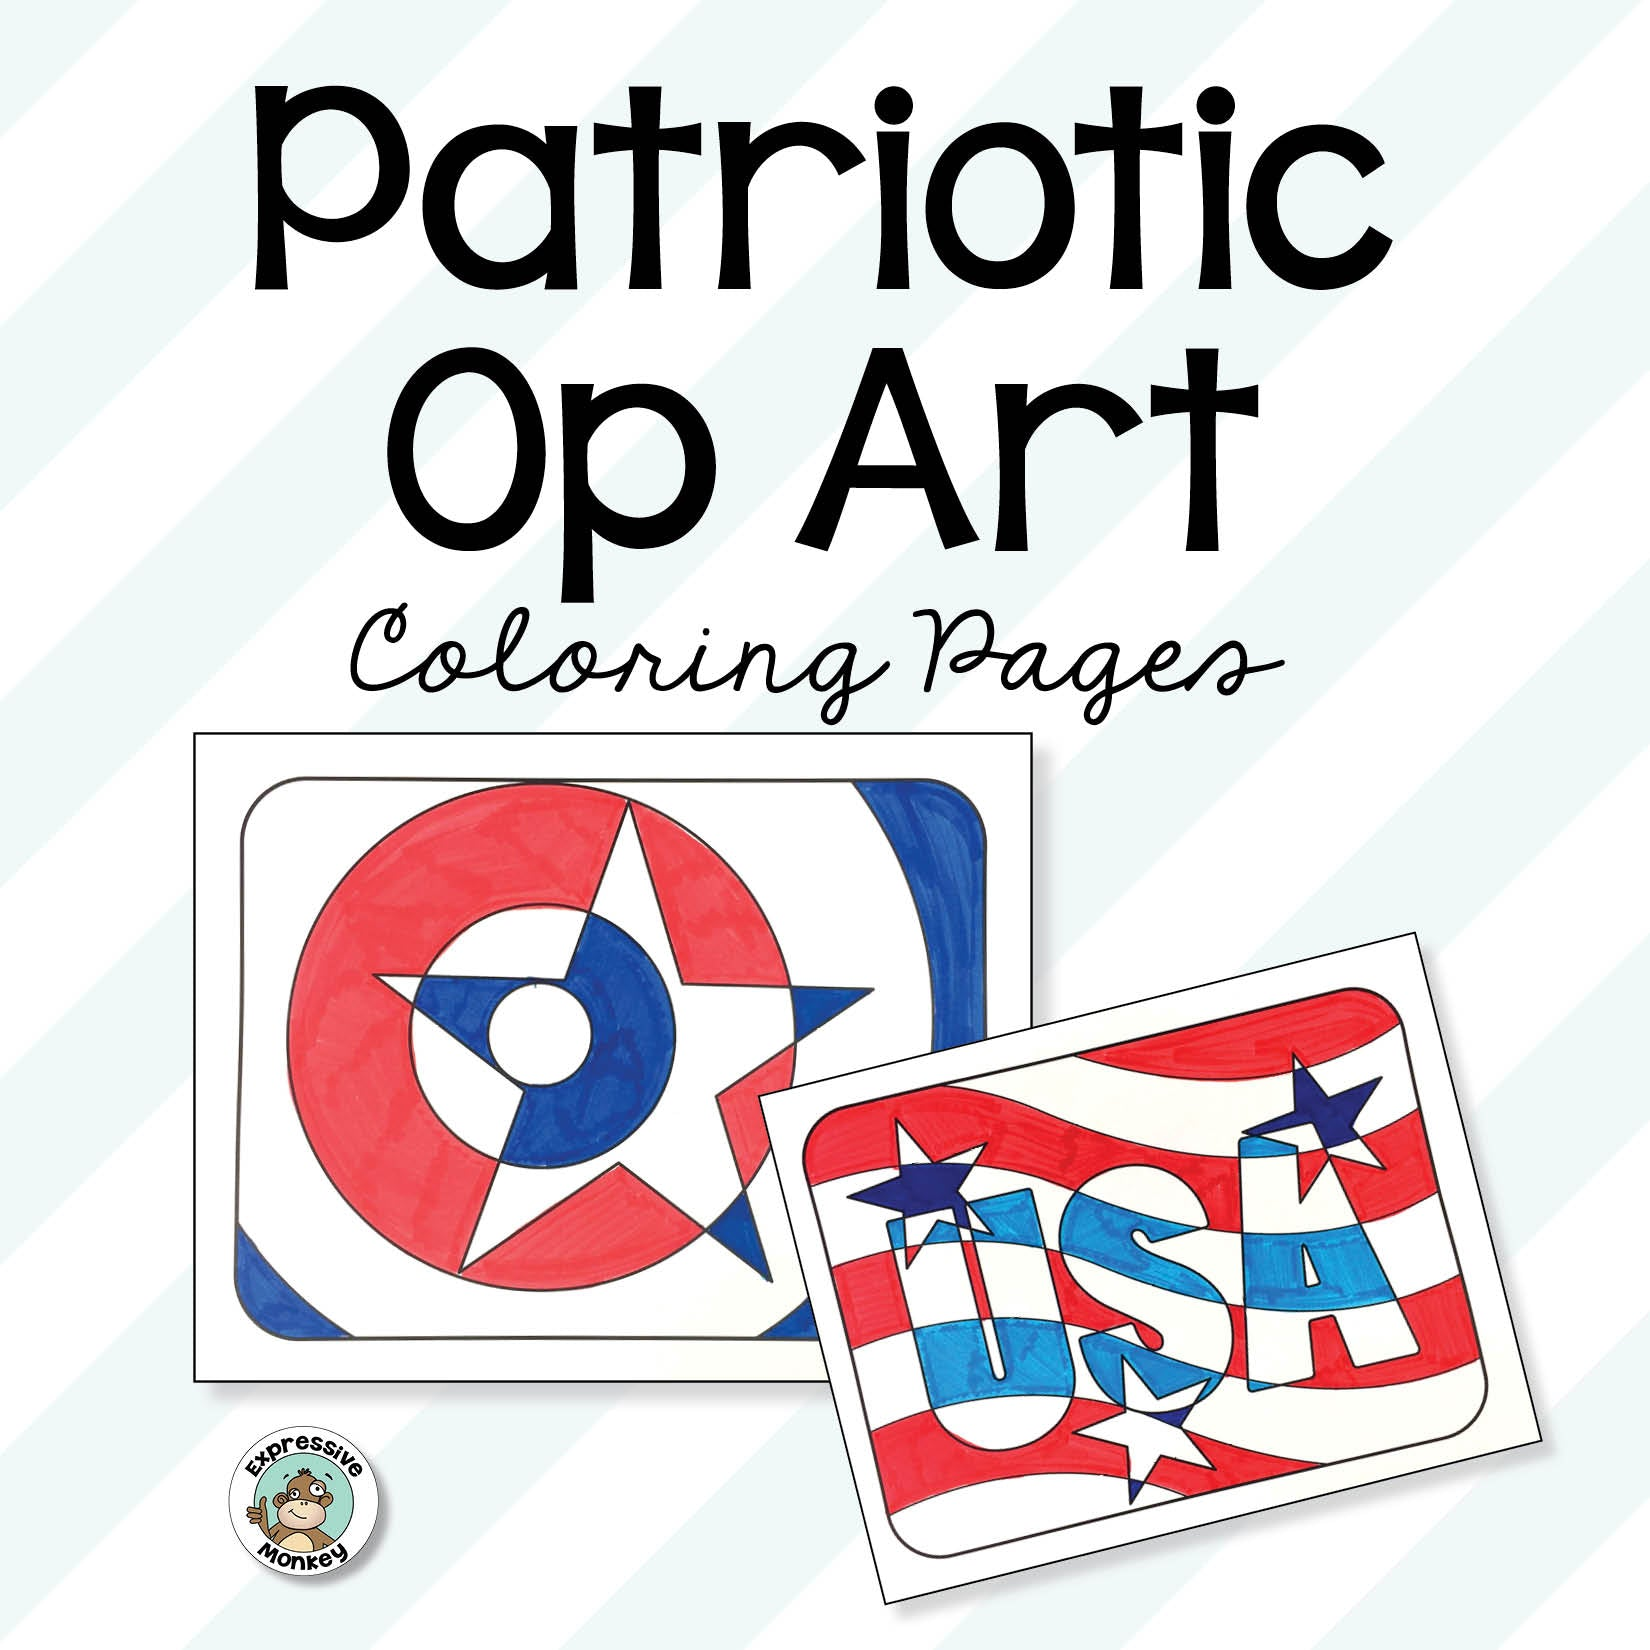 Patriotic Coloring Pages with Op Art